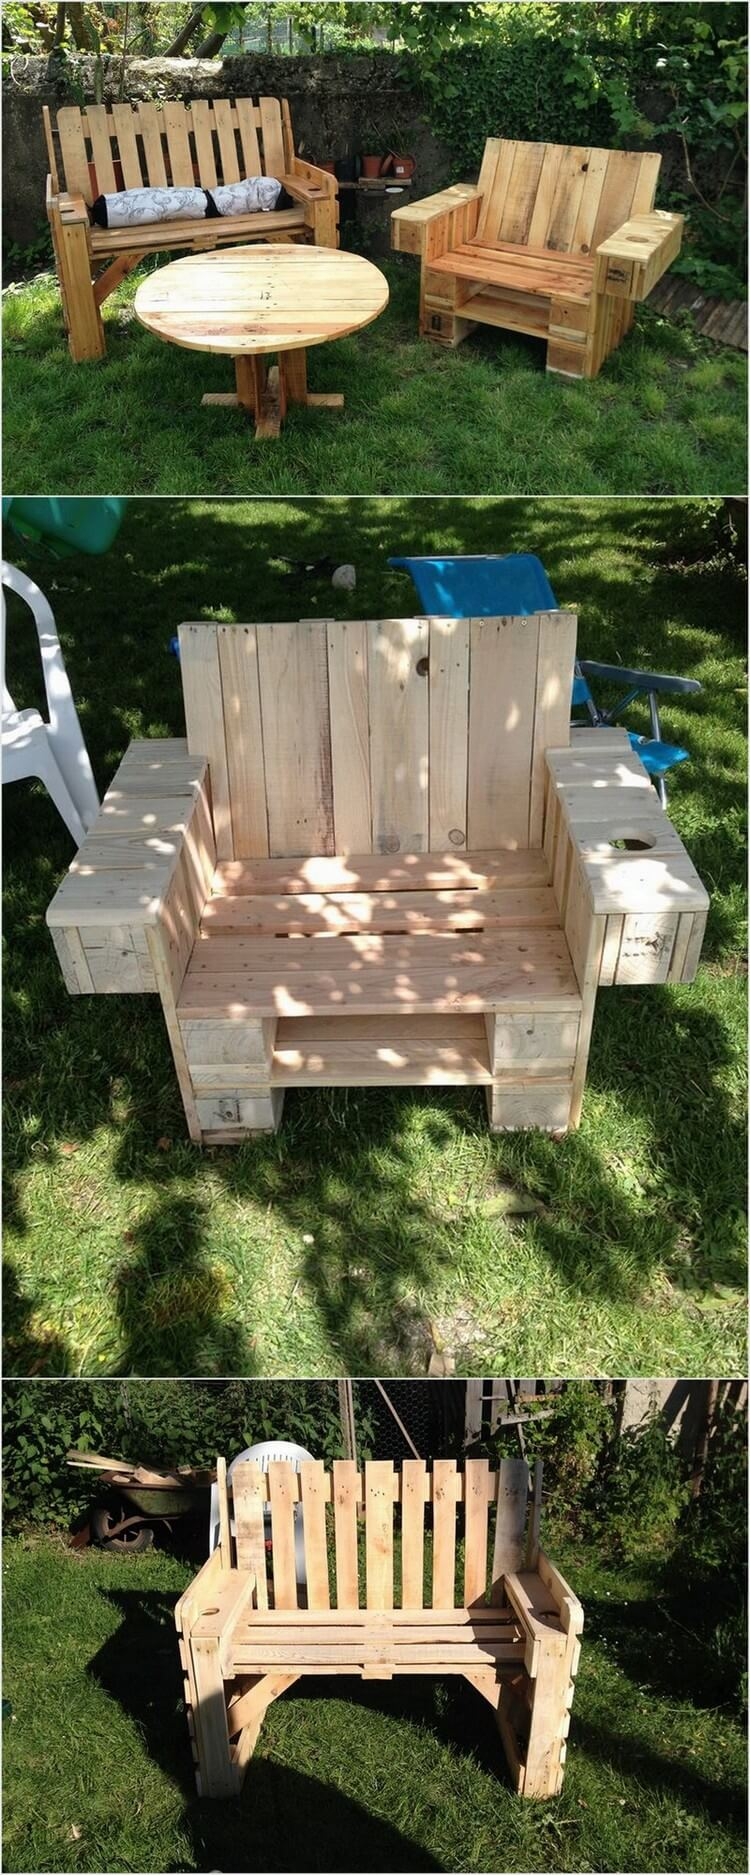 Wood Pallet Garden Sofa and Chair with Table